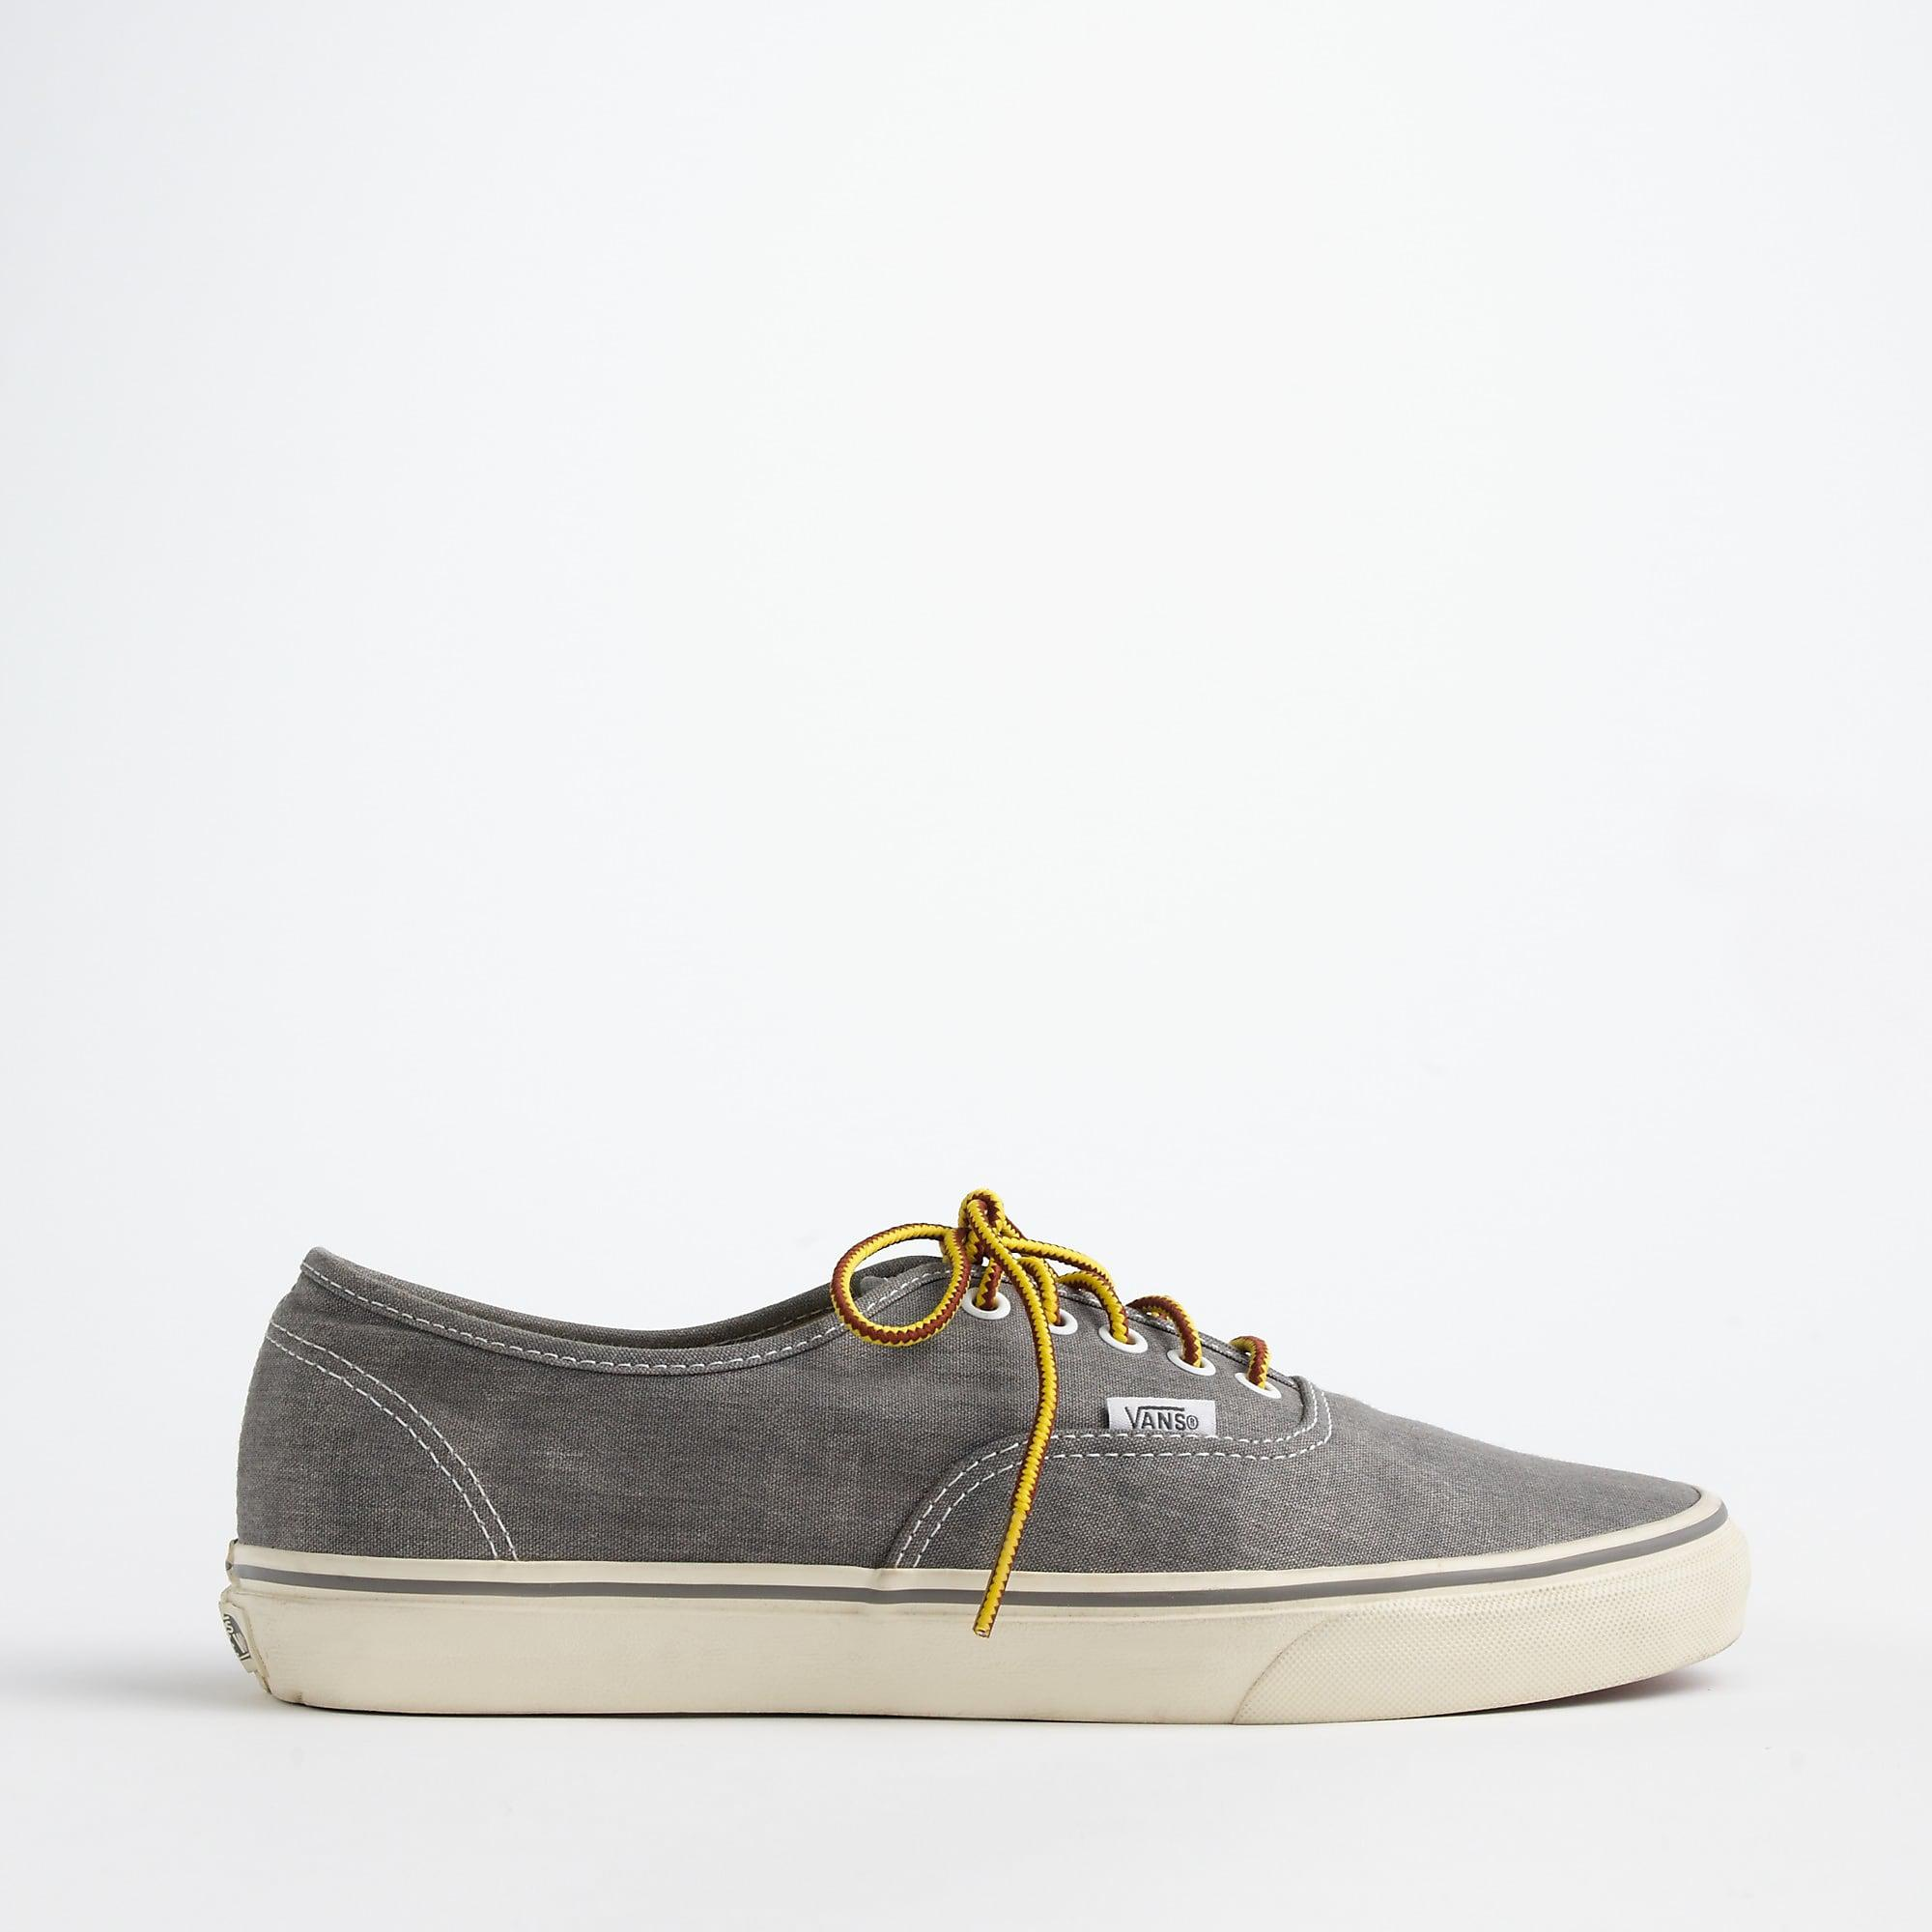 38e20c6af41 ... Washed Canvas Authentic Sneakers for Men - Lyst. View fullscreen